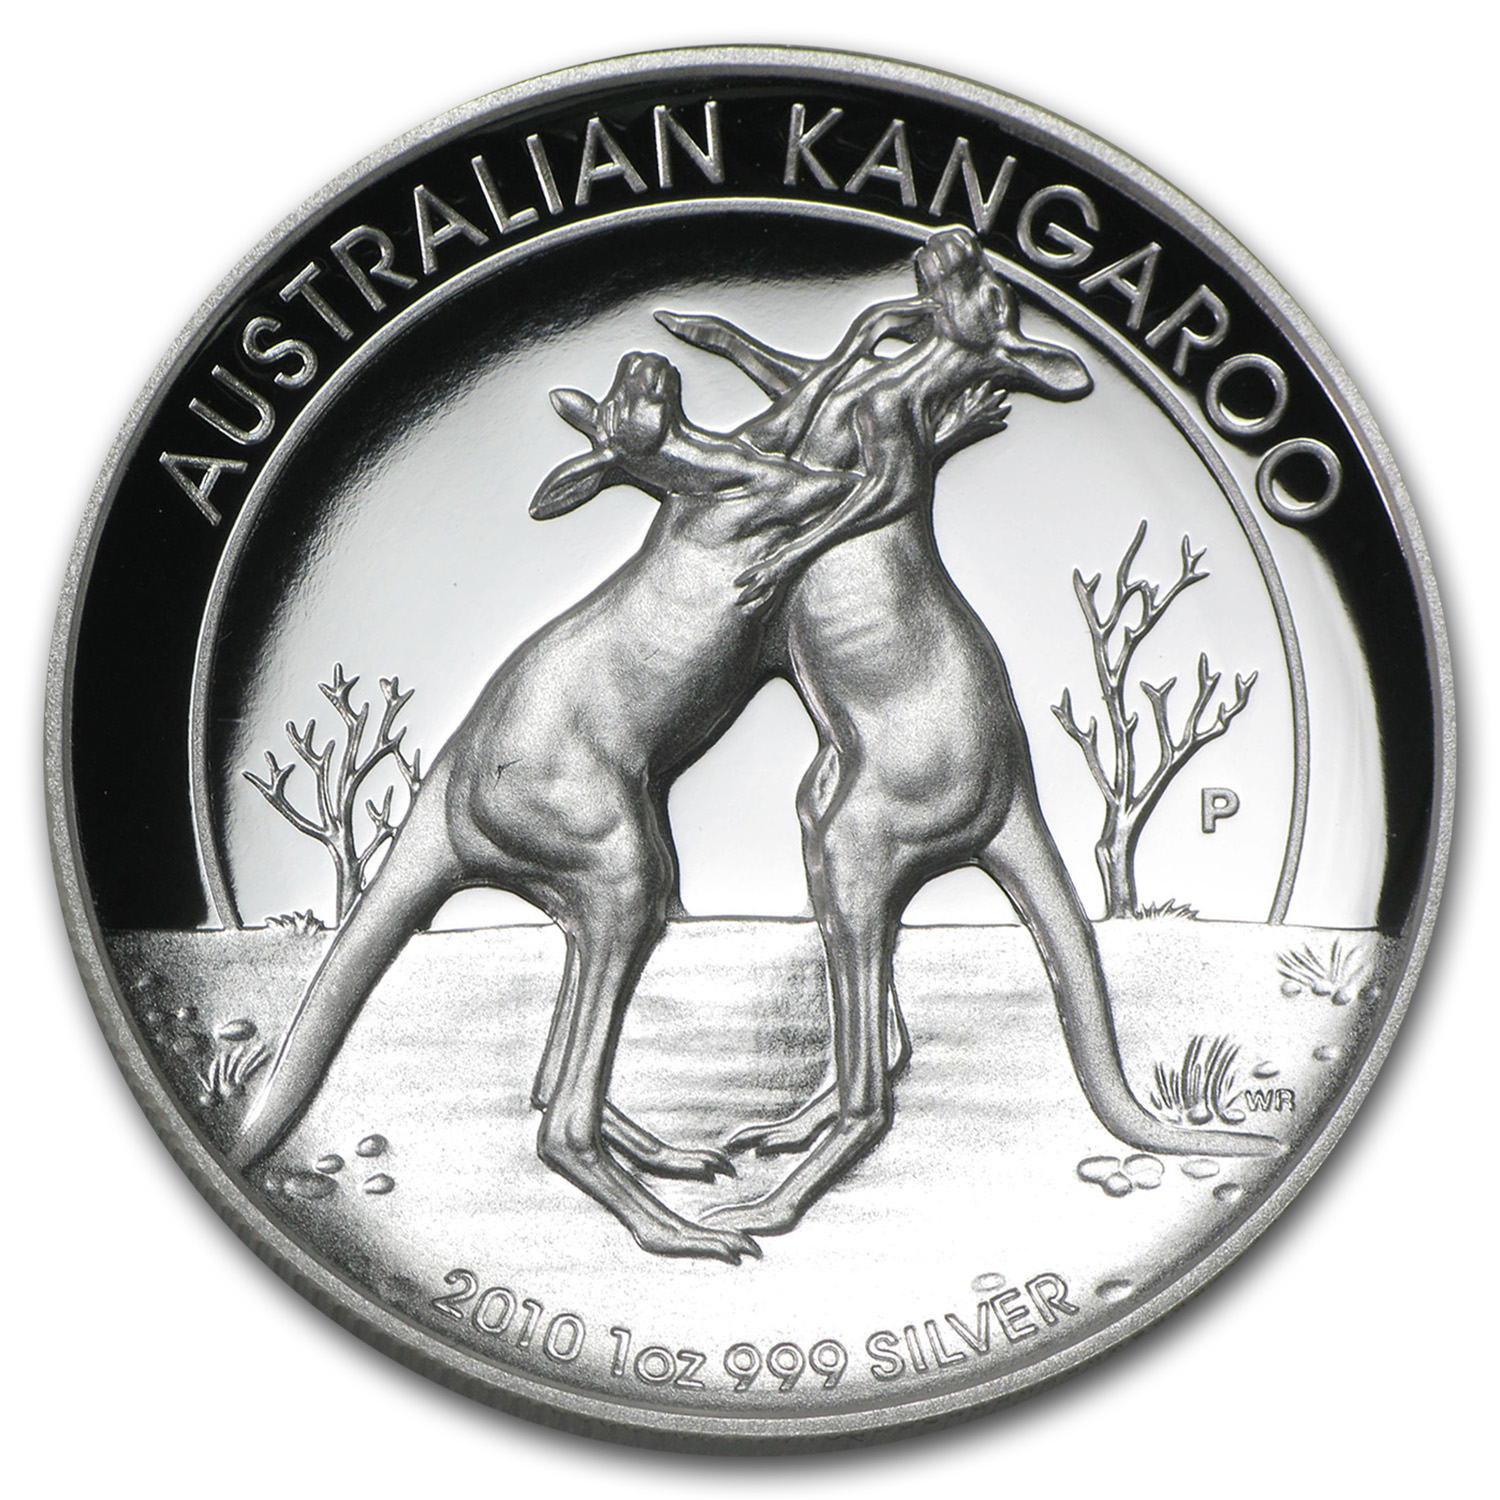 2010 Australia 1 oz Silver Kangaroo Proof (High Relief)